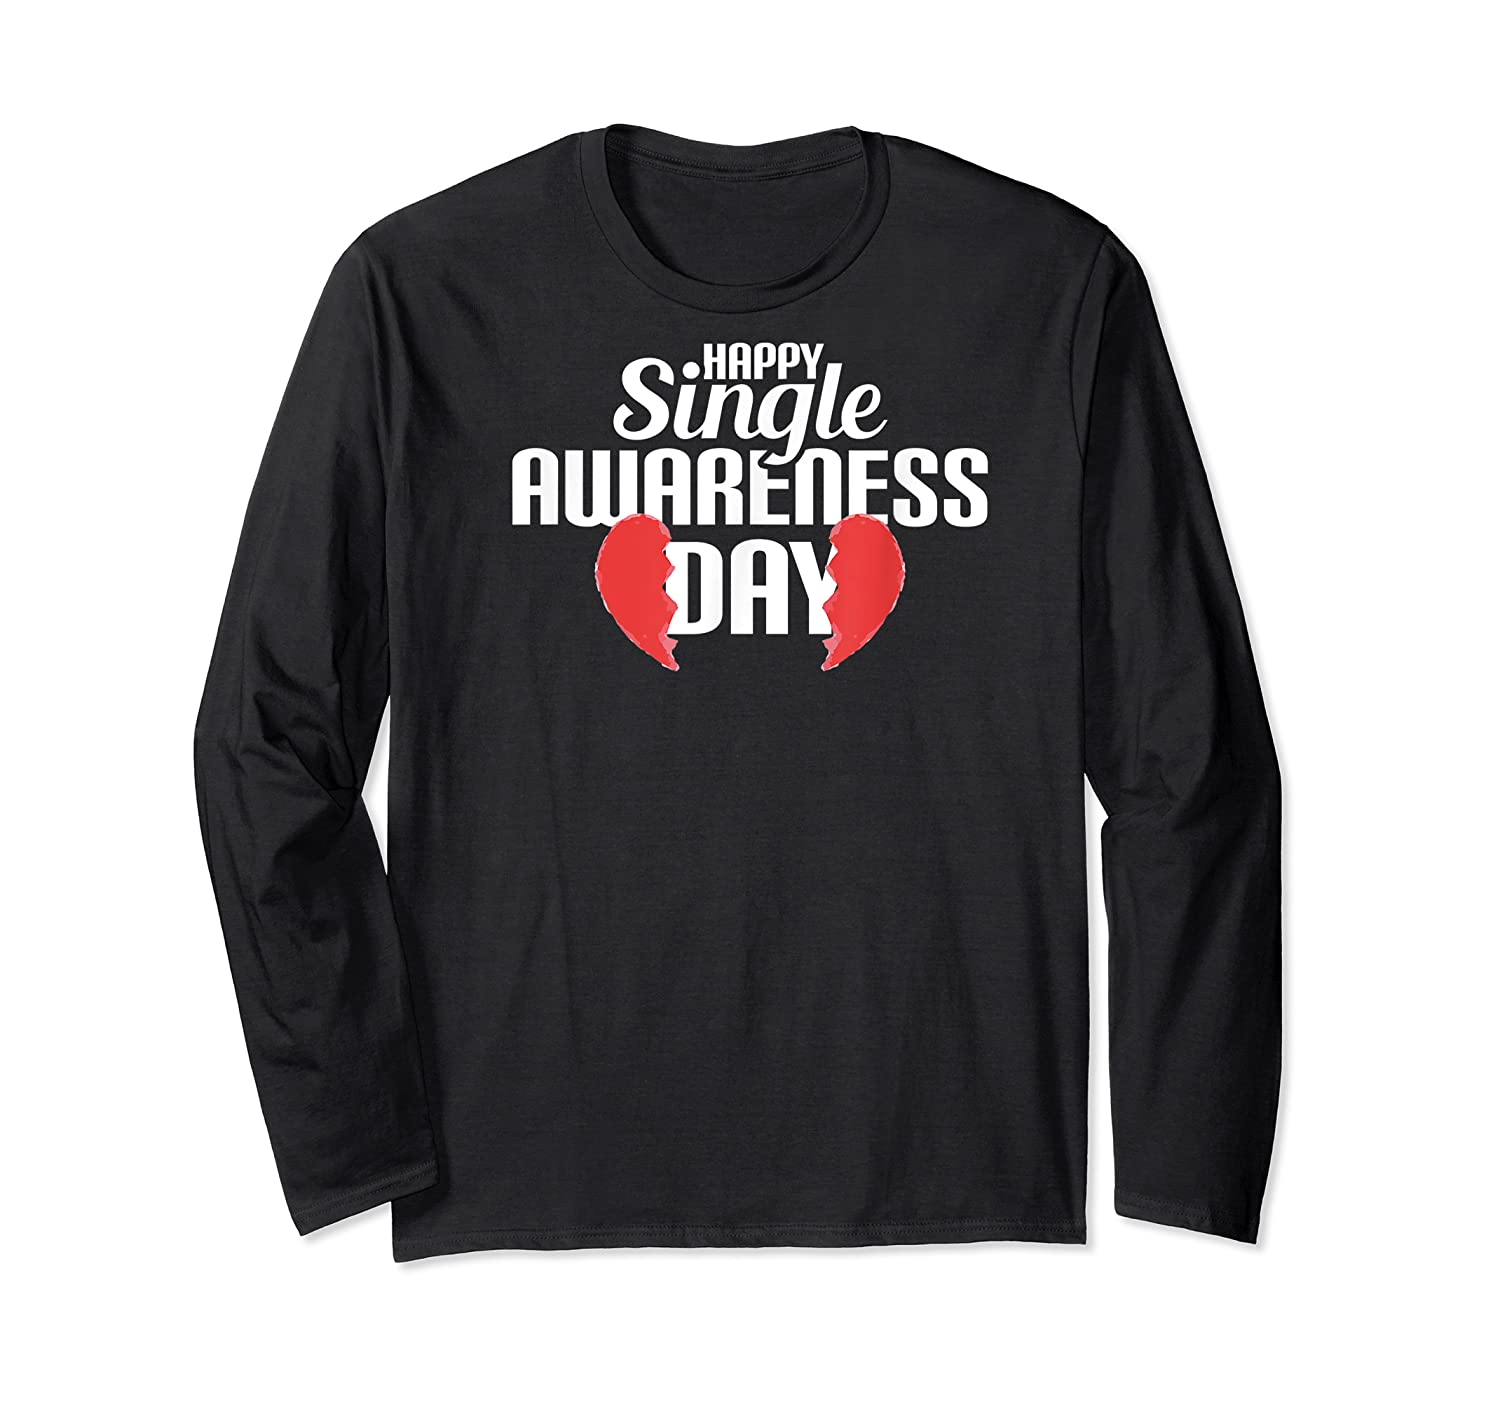 Funny Broken Hearted Perfect Attire Humorous Top Shirts Long Sleeve T-shirt